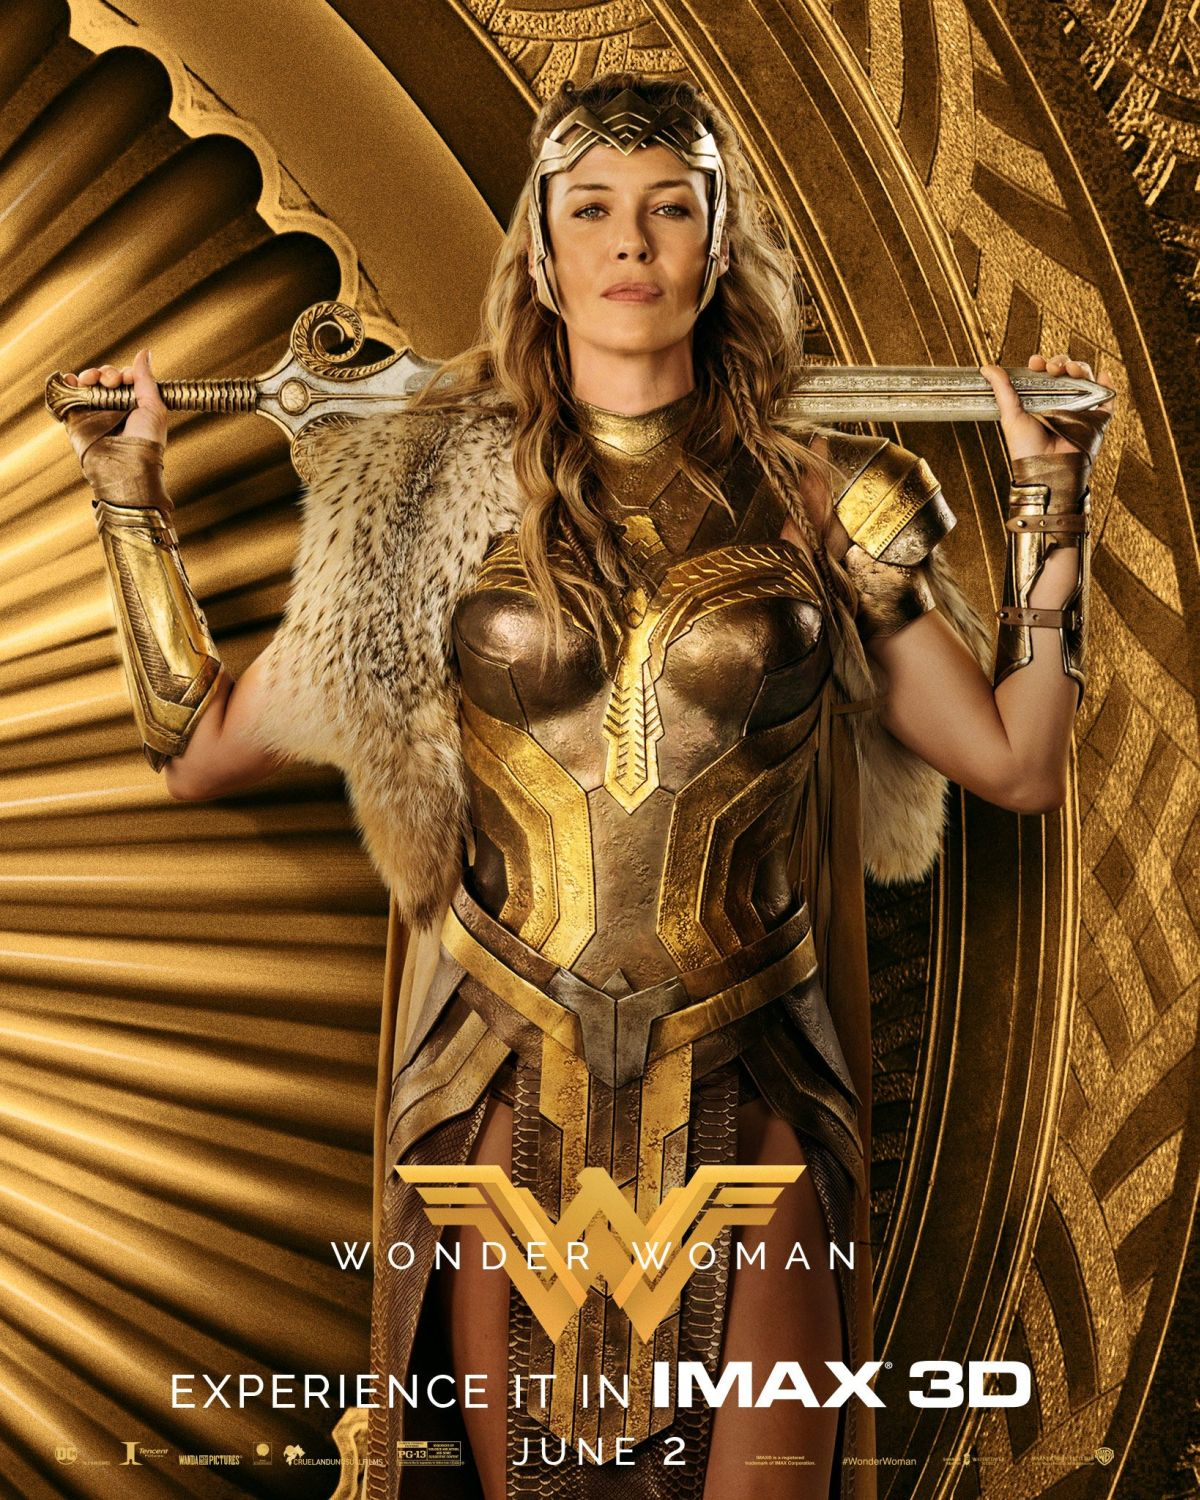 Golden IMAX Posters For Wonder Woman Gather The Film's Leading Ladies